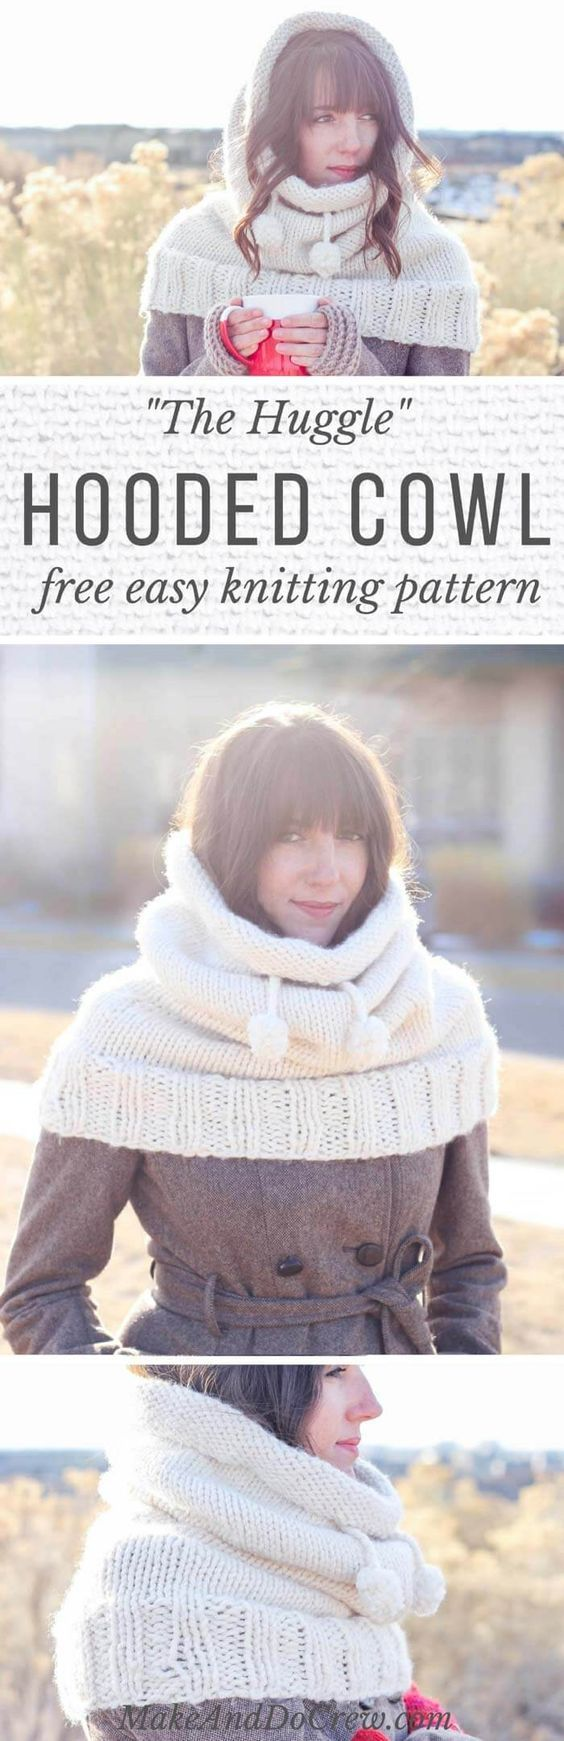 The Huggle\' Hooded Cowl – Free Knitting Pattern | Stricken und ...